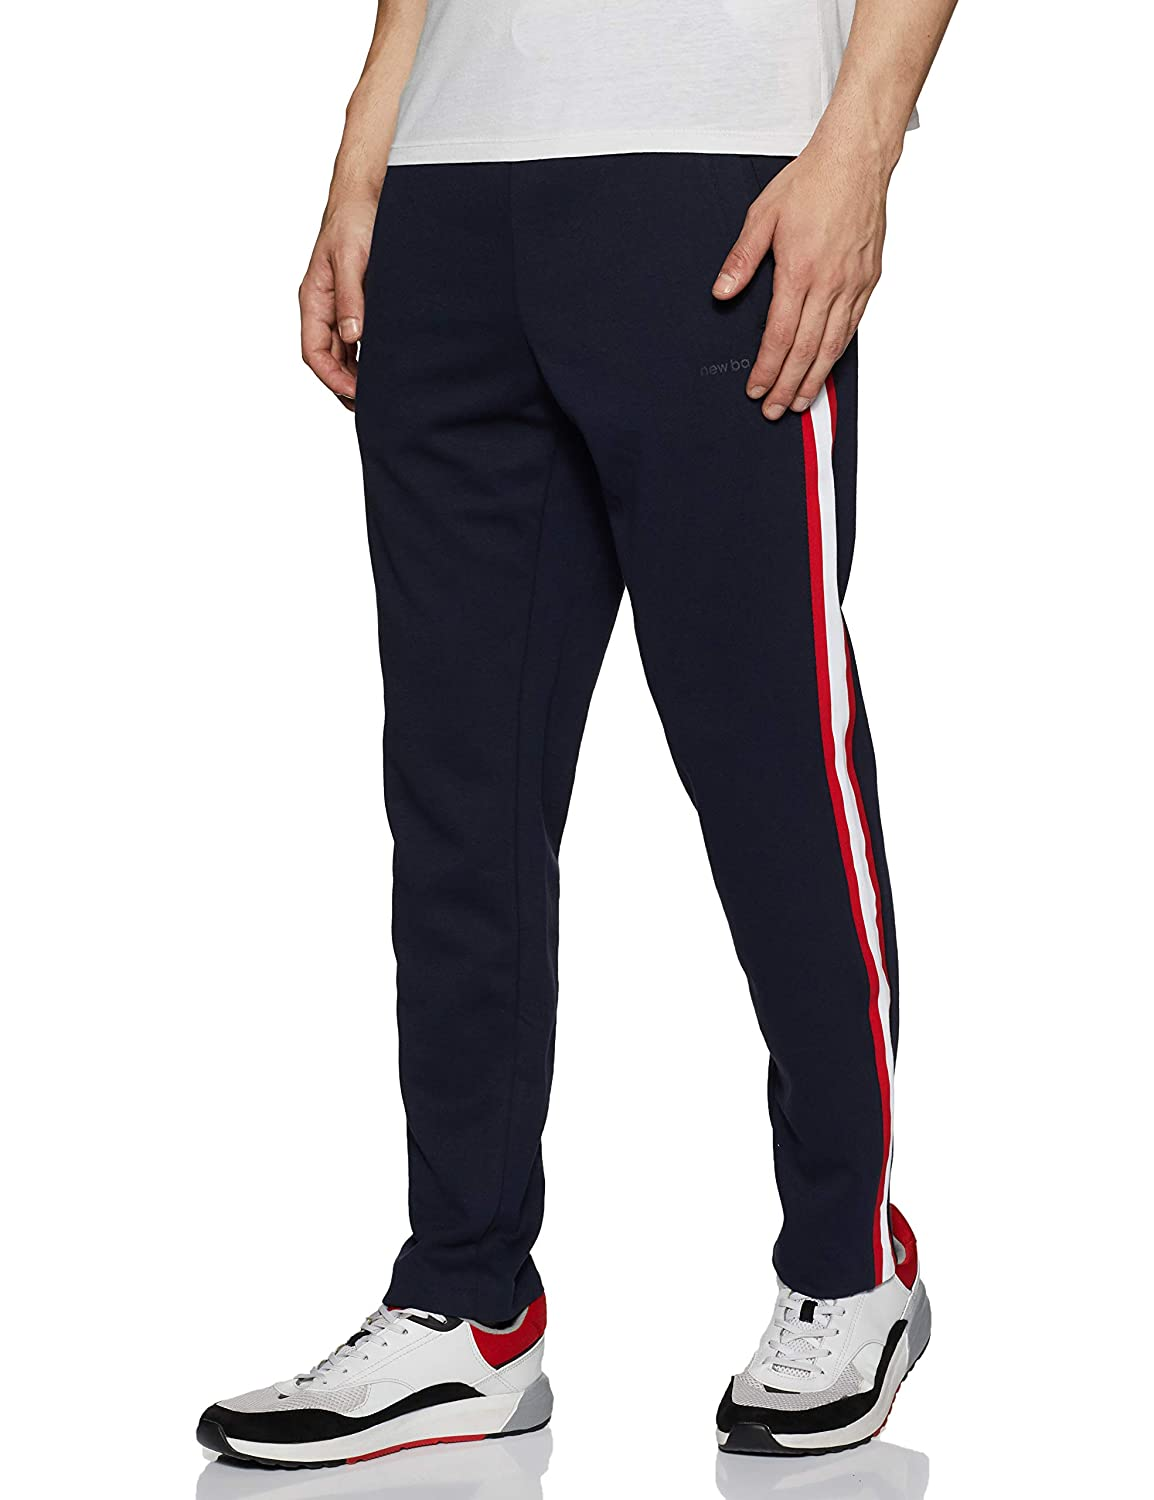 a50d4e54a7fd9 new balance Men's Regular fit Track Pants: Amazon.in: Clothing & Accessories